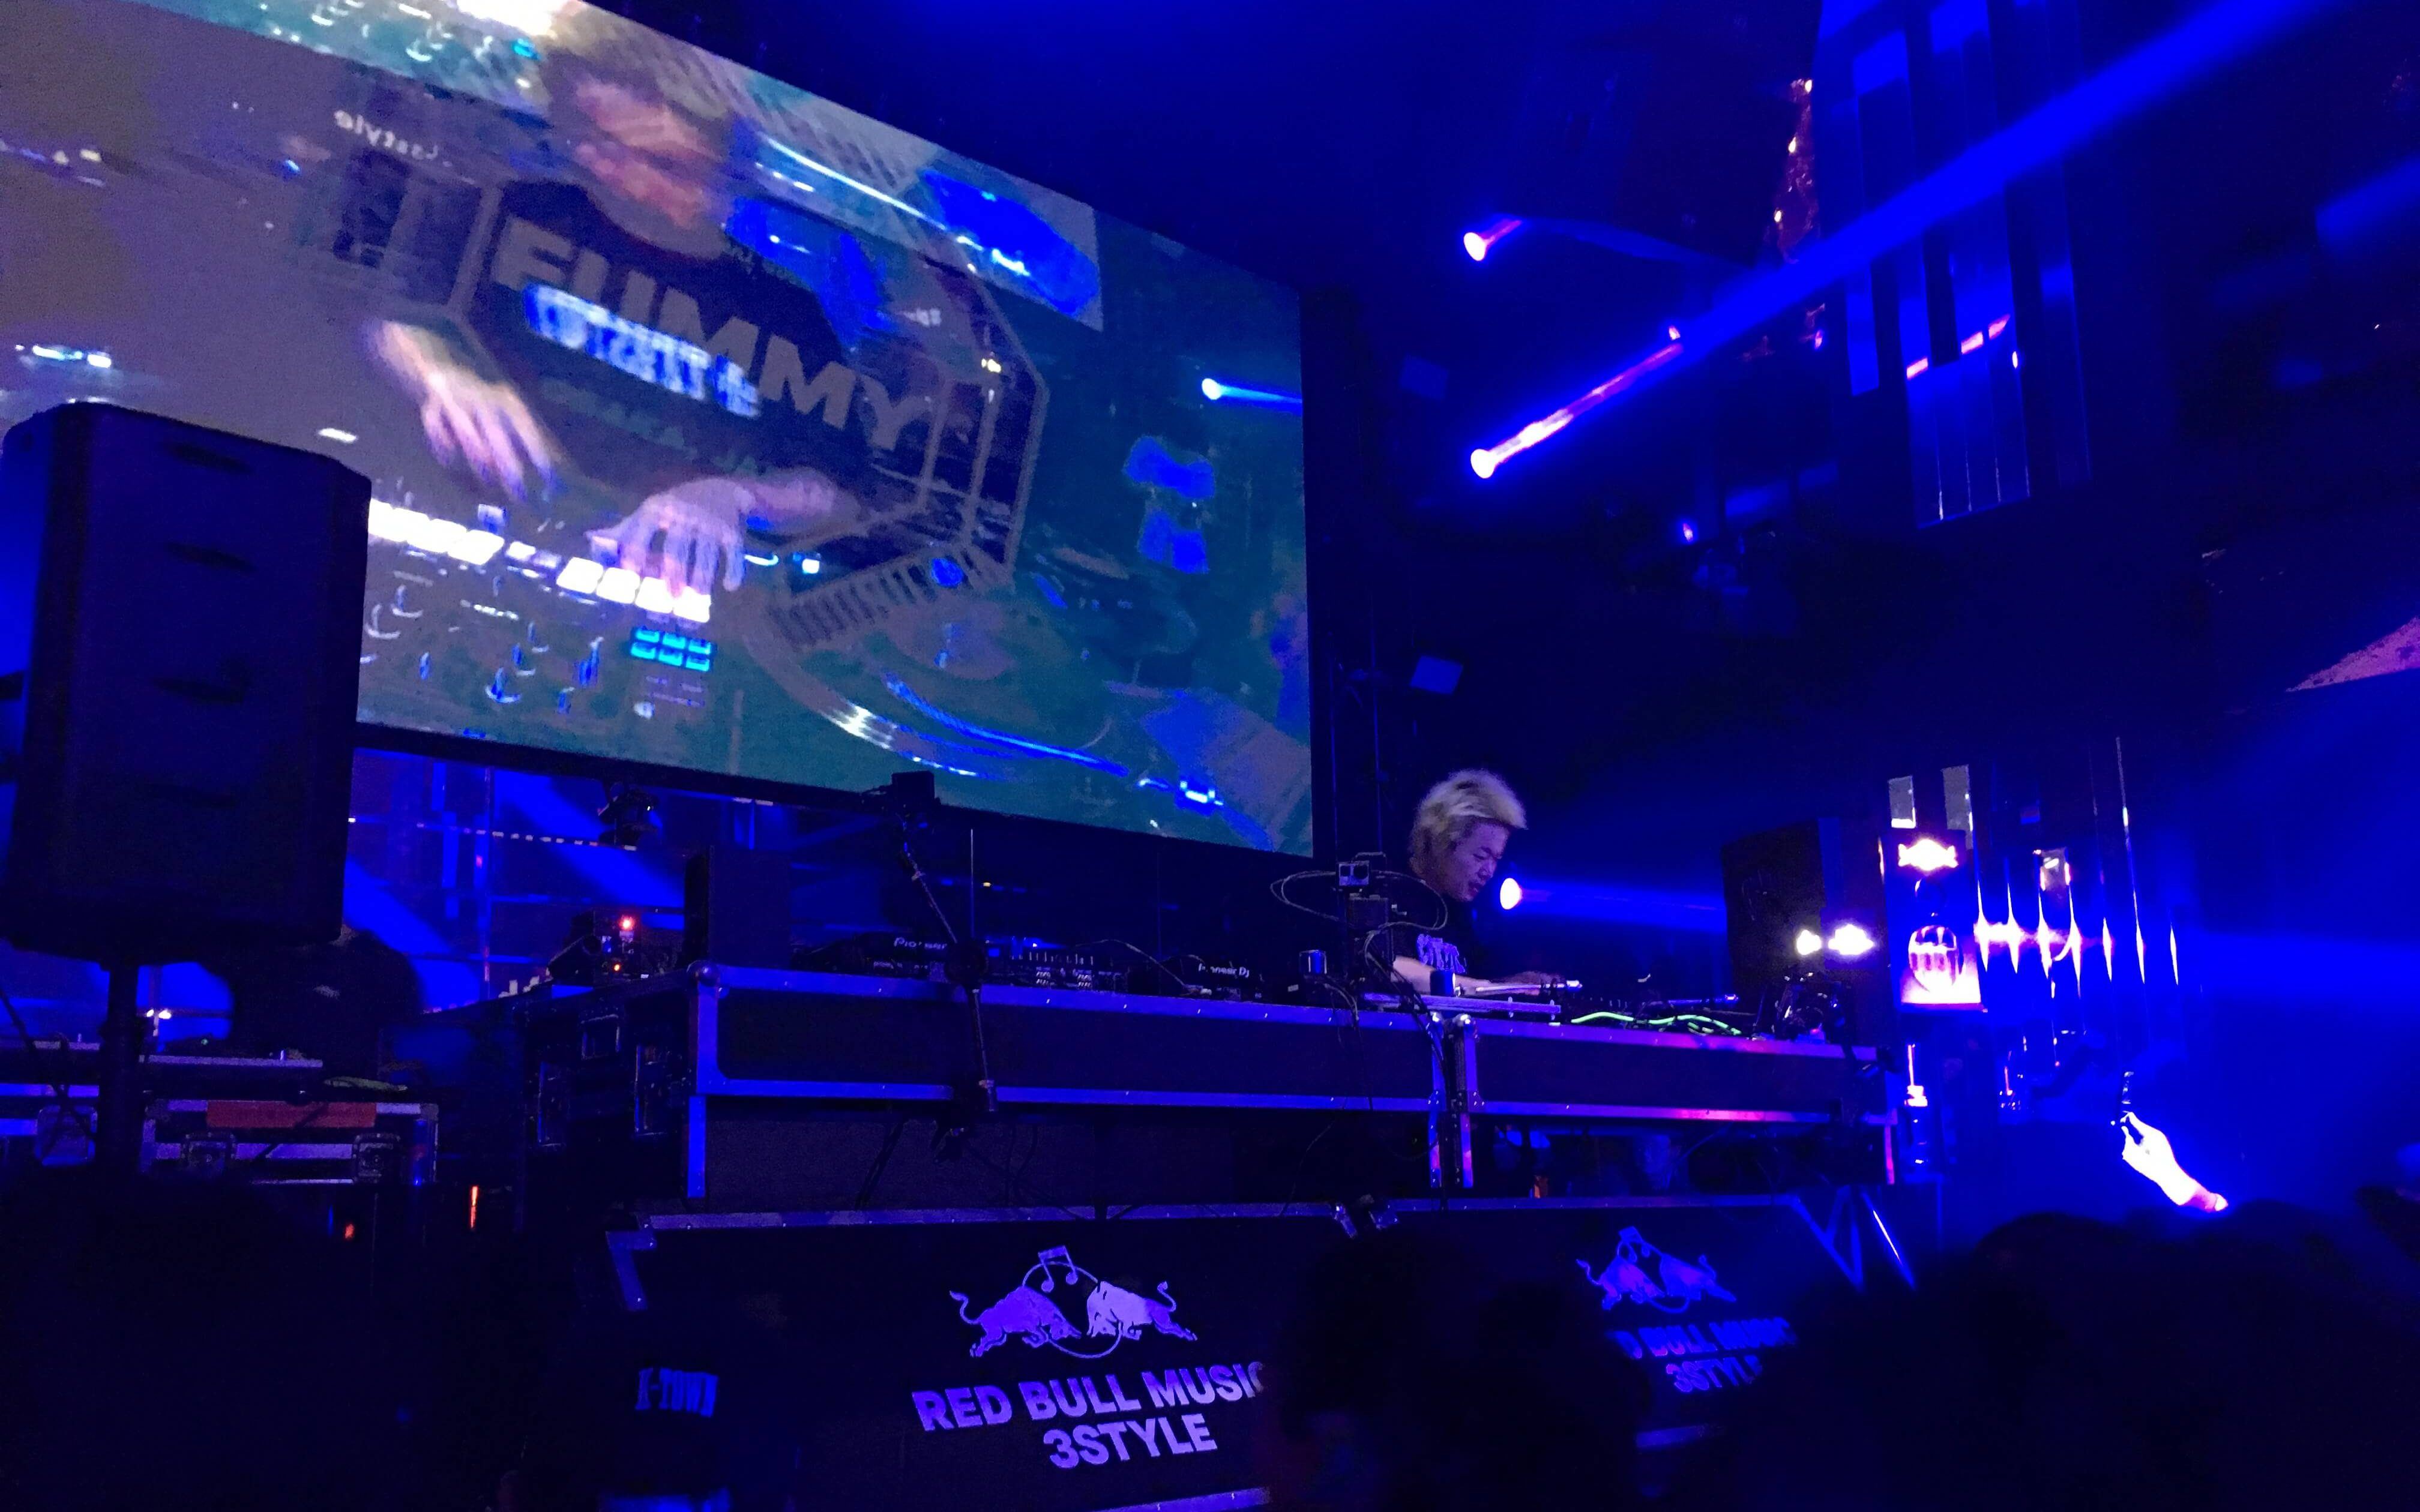 Red Bull Music 3style ⅸ Japan Final